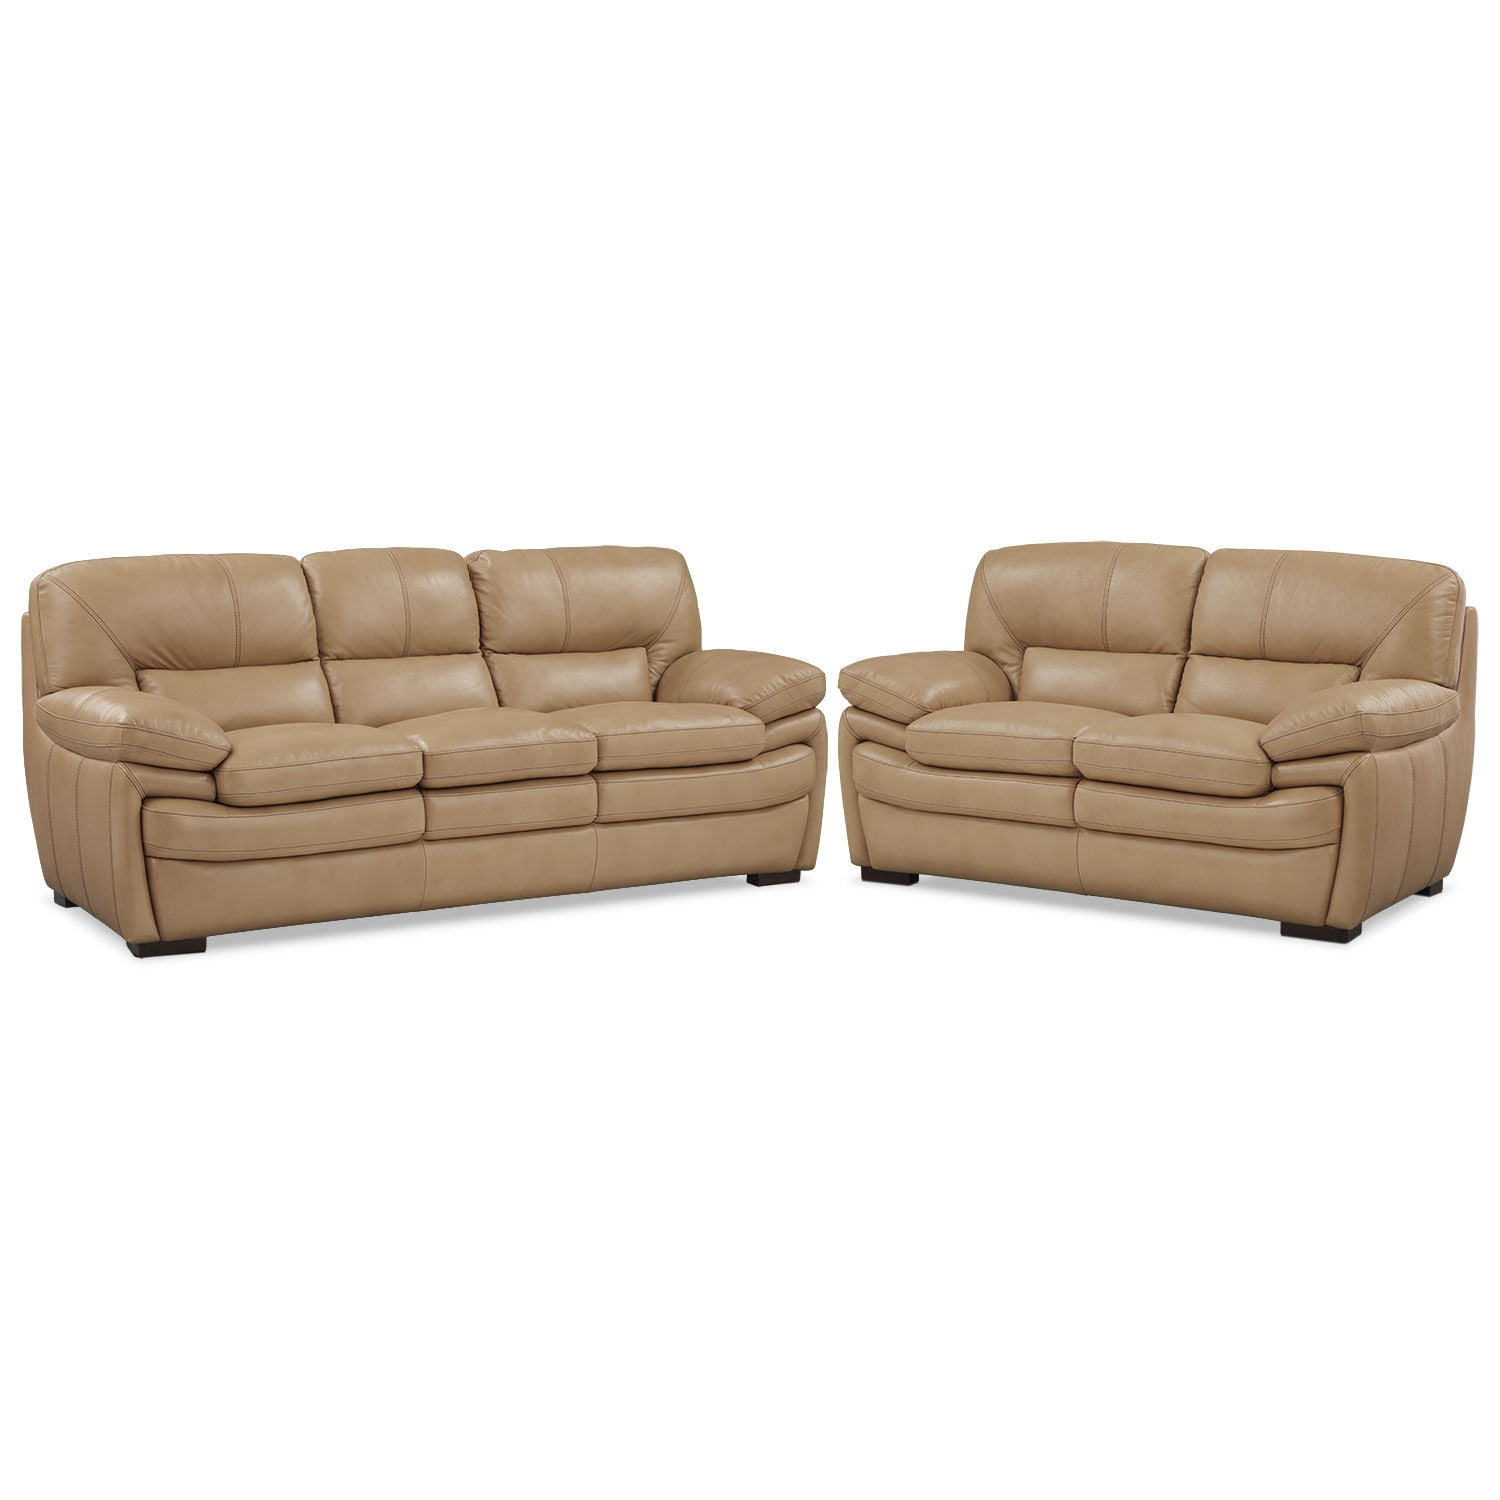 Living Room Furniture - Peyton Taupe 2 Pc. Living Room